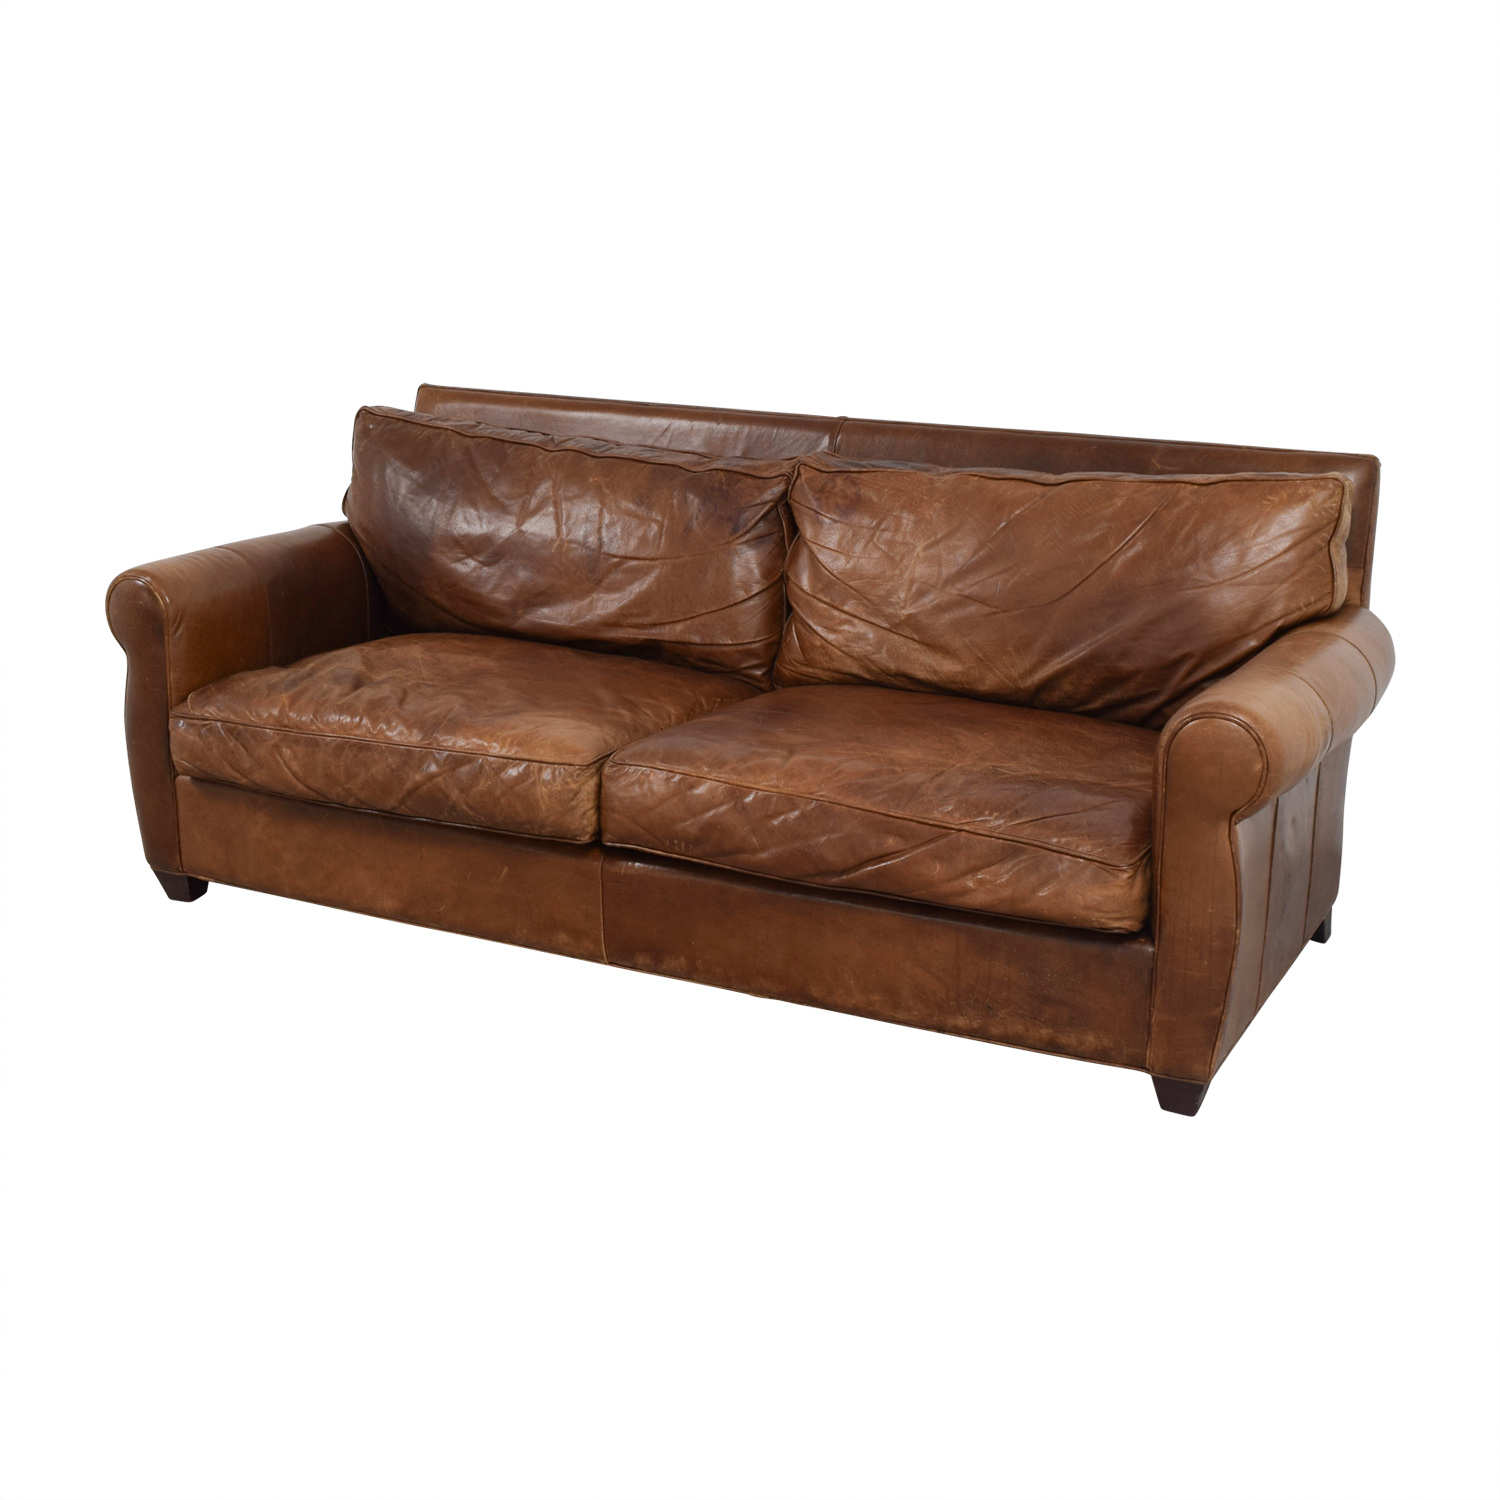 Arhaus Rust Leather Two-Cushion Sofa / Sofas